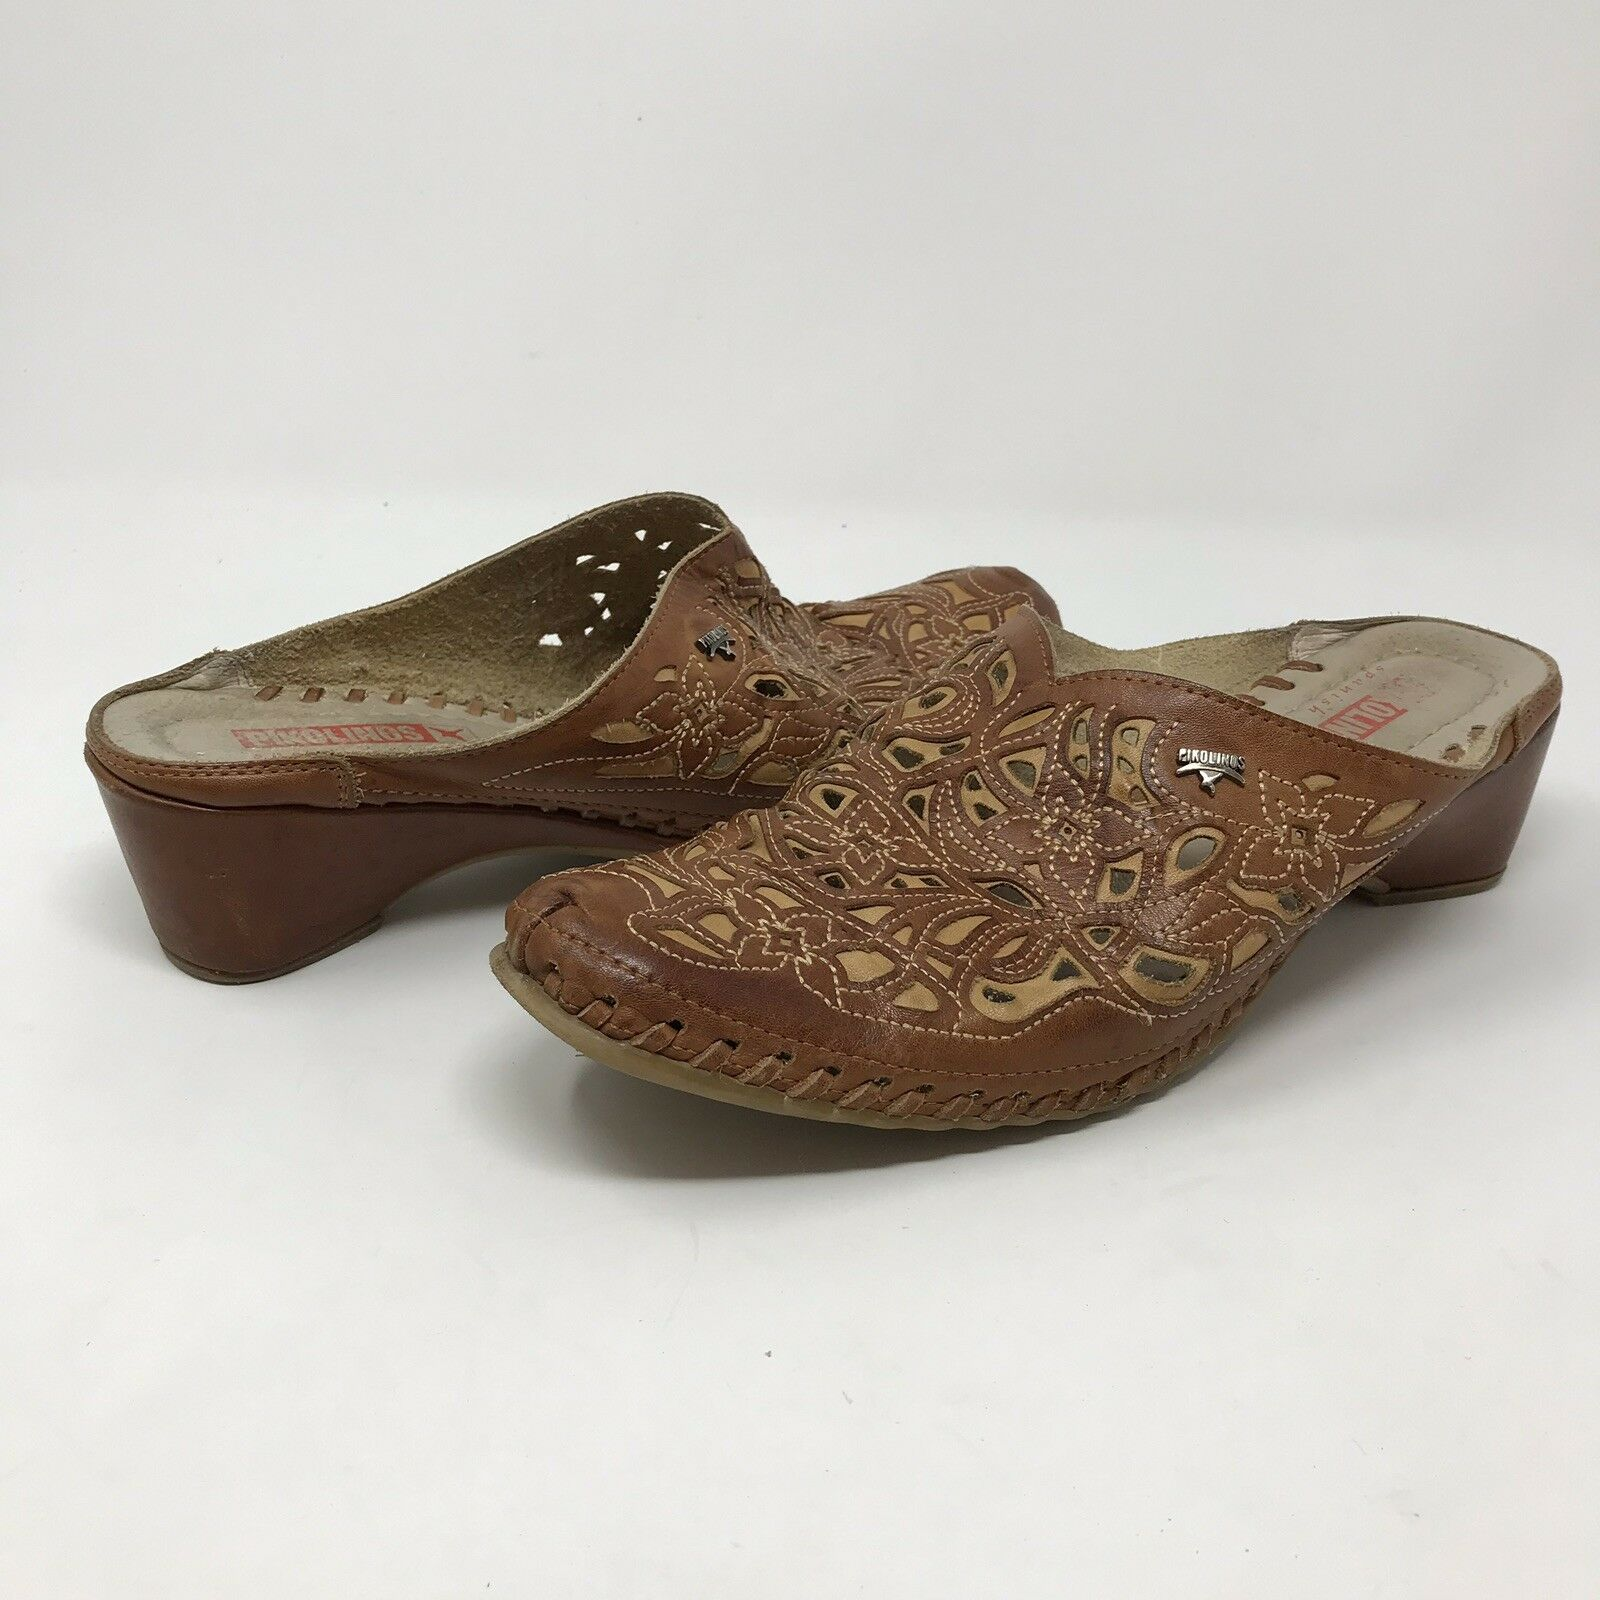 Pikolinos Brown Leather Floral Cut Out Mules Slip-On Heels US Size 7.5